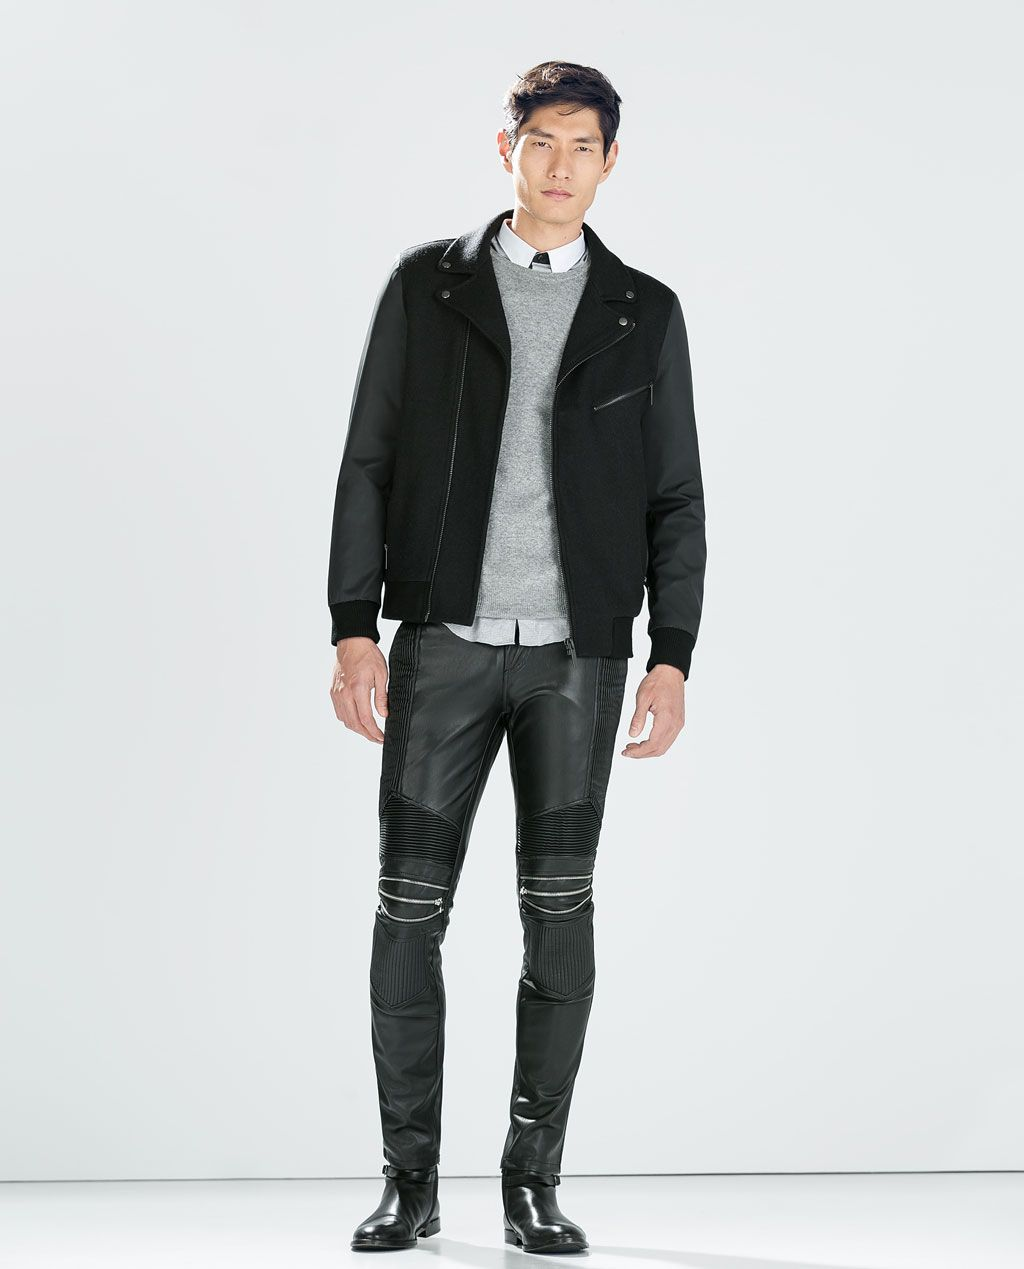 79ad8f42 ZARA - MAN - SYNTHETIC LEATHER TROUSERS WITH ZIPS. Find this Pin and more  ...